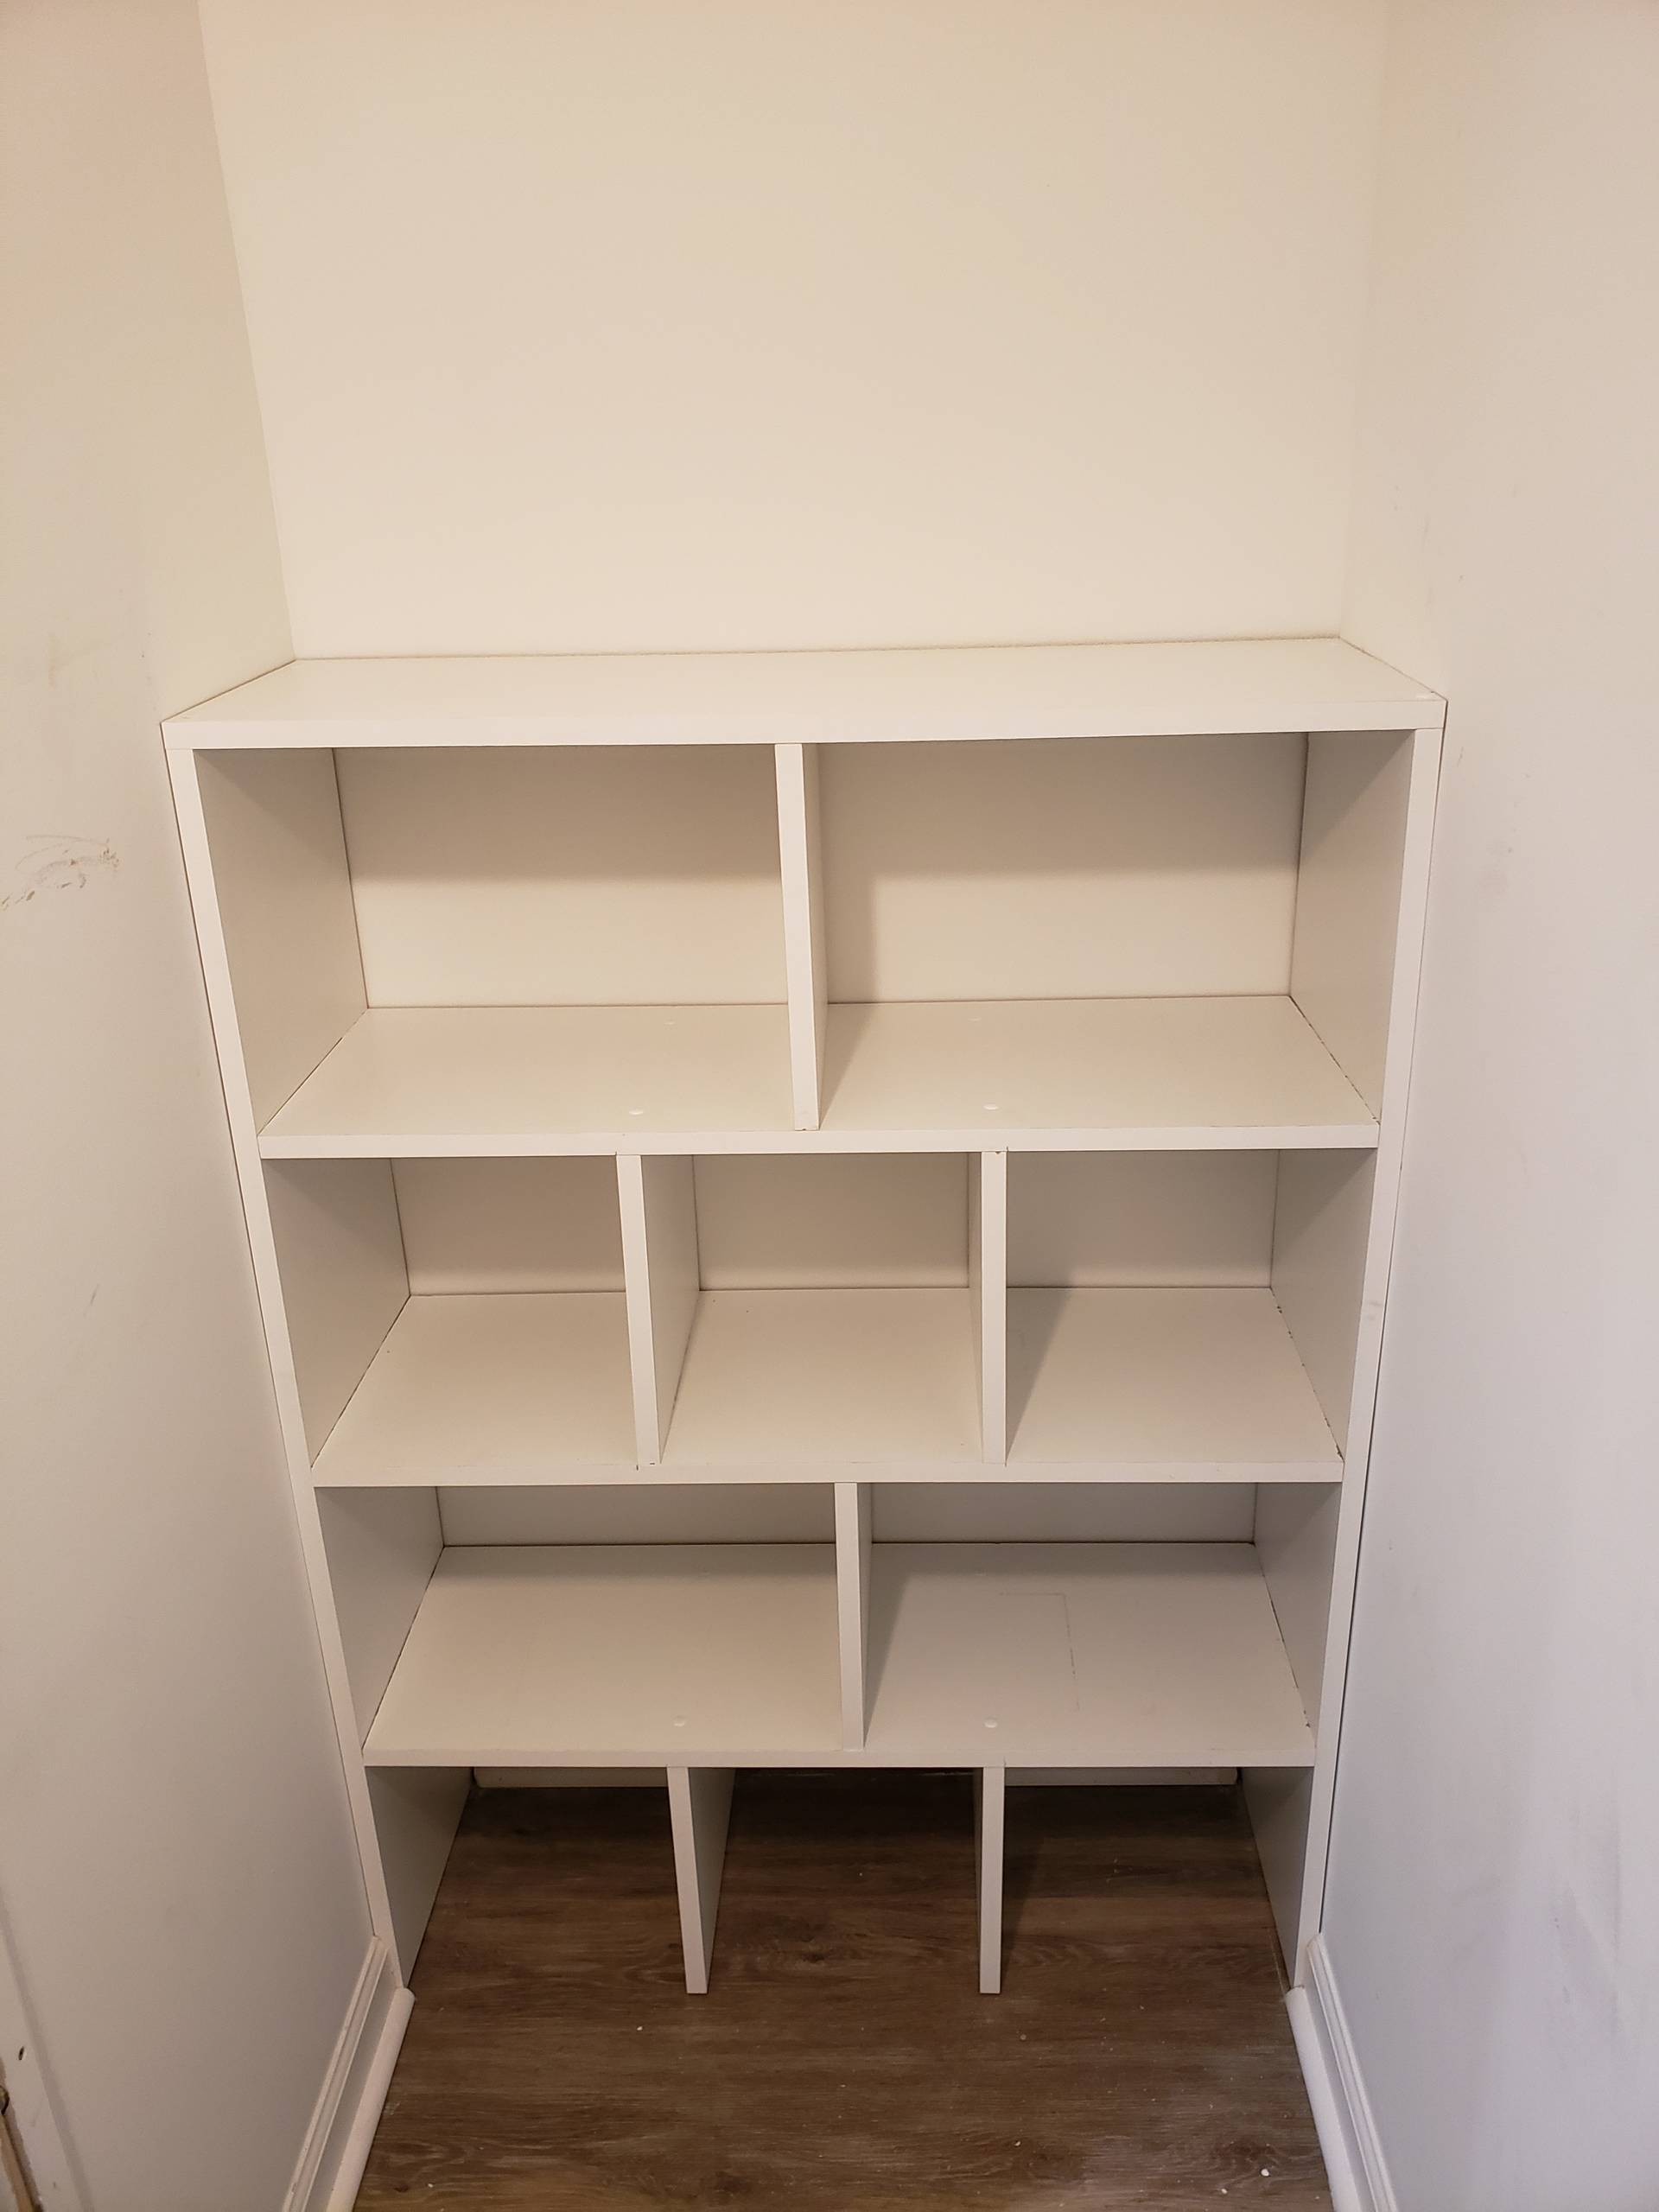 Built Custom Closet Shelves with Two Bathroom Renovations